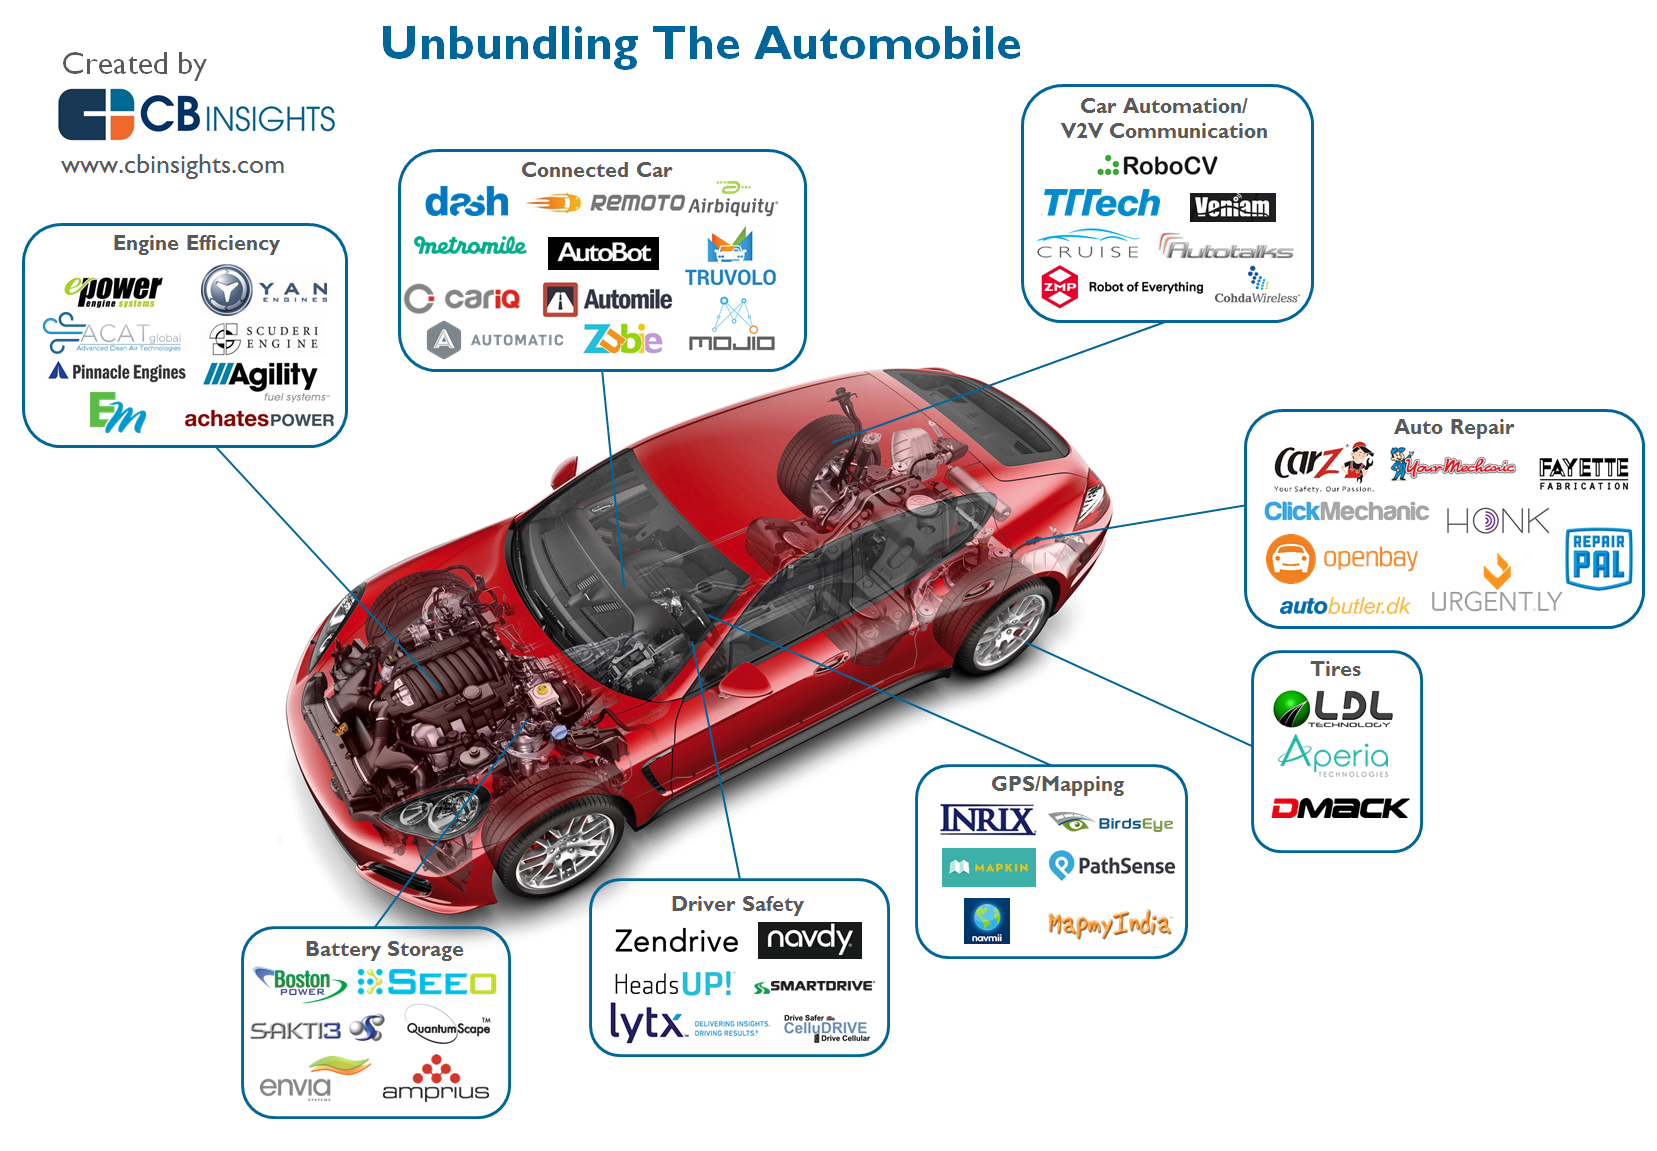 Who's Disrupting the Automobile? [INFOGRAPHIC]